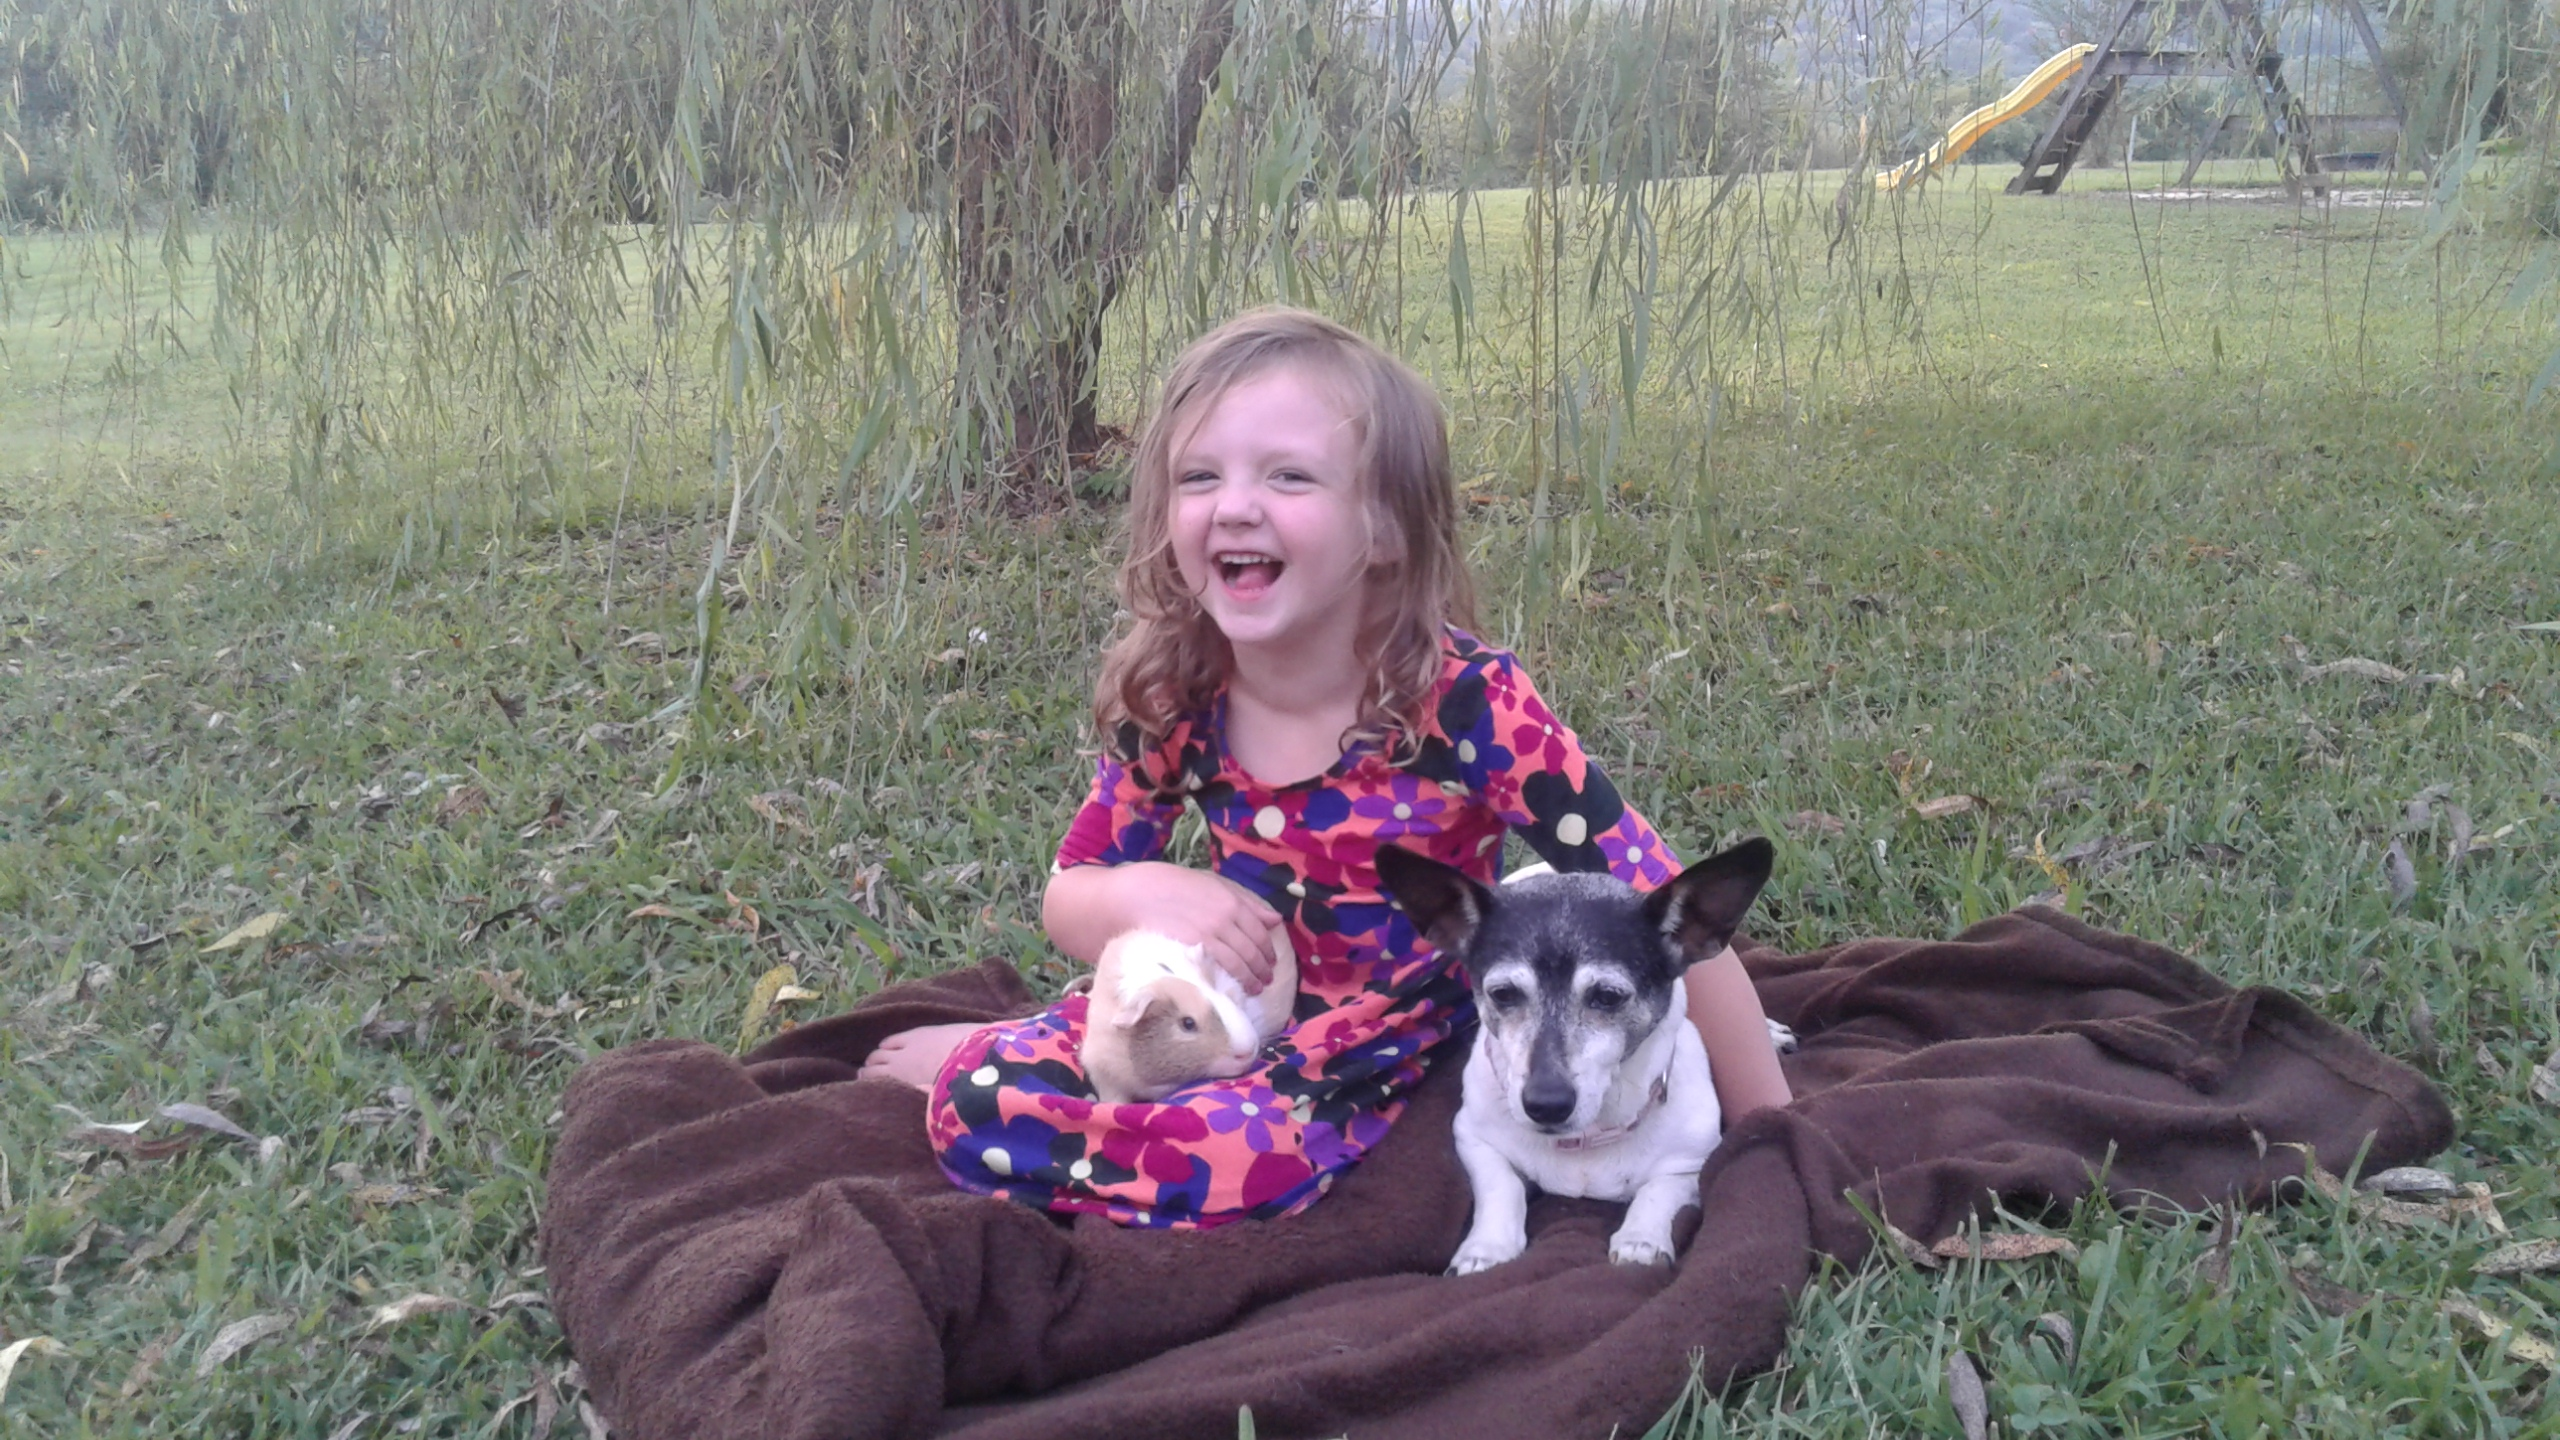 cute girl sitting in the playground , playing with the dog and a rabbit.